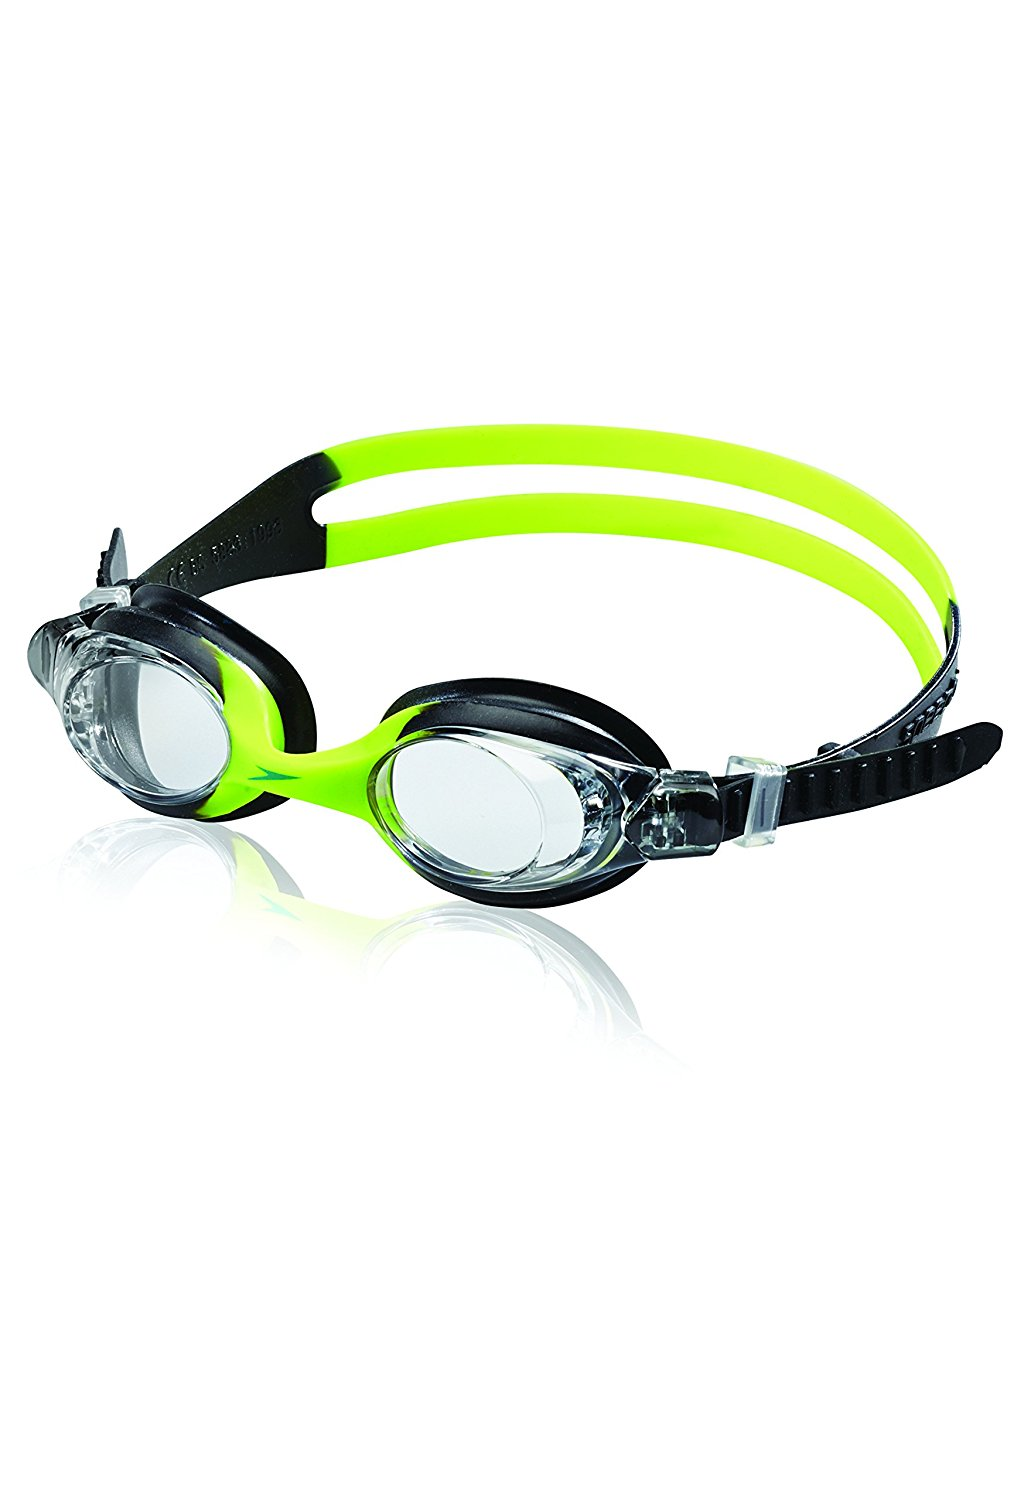 Speedo Kids Skoogles Goggle Kids Recreational Swim Goggle Black   Green by Speedo